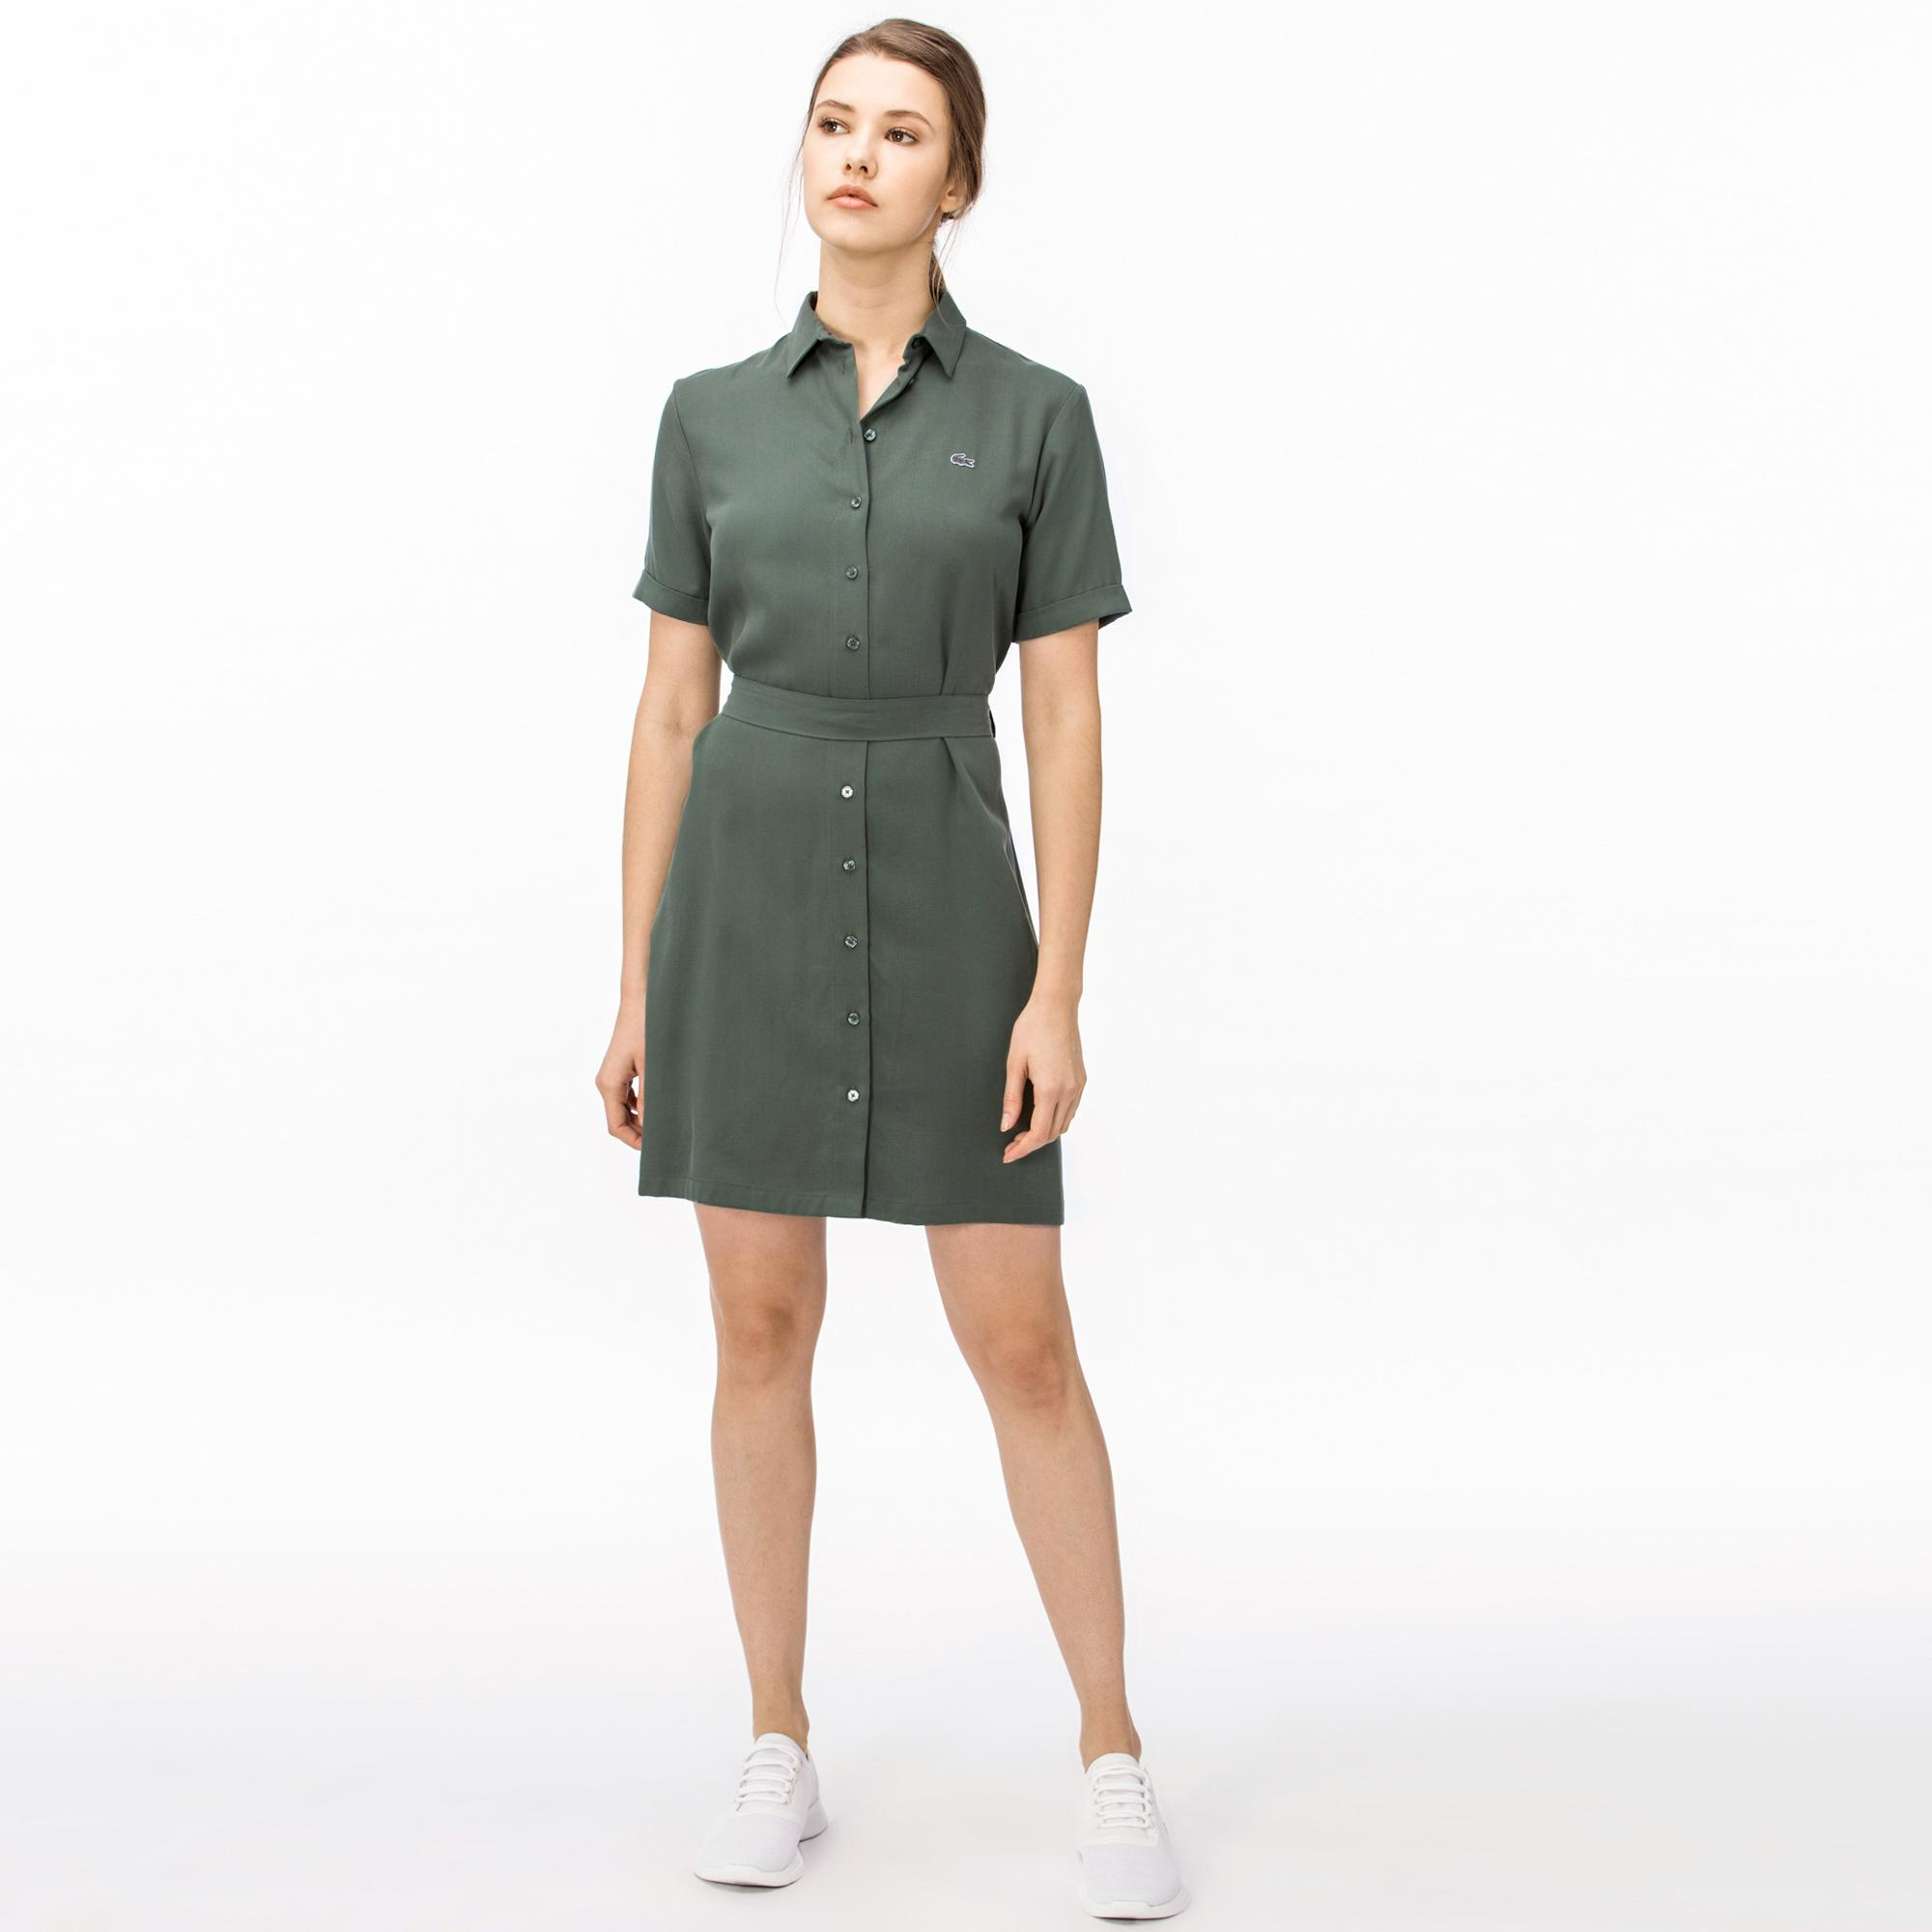 2c40885b91 Lacoste Women s Dress EF0913 13Y